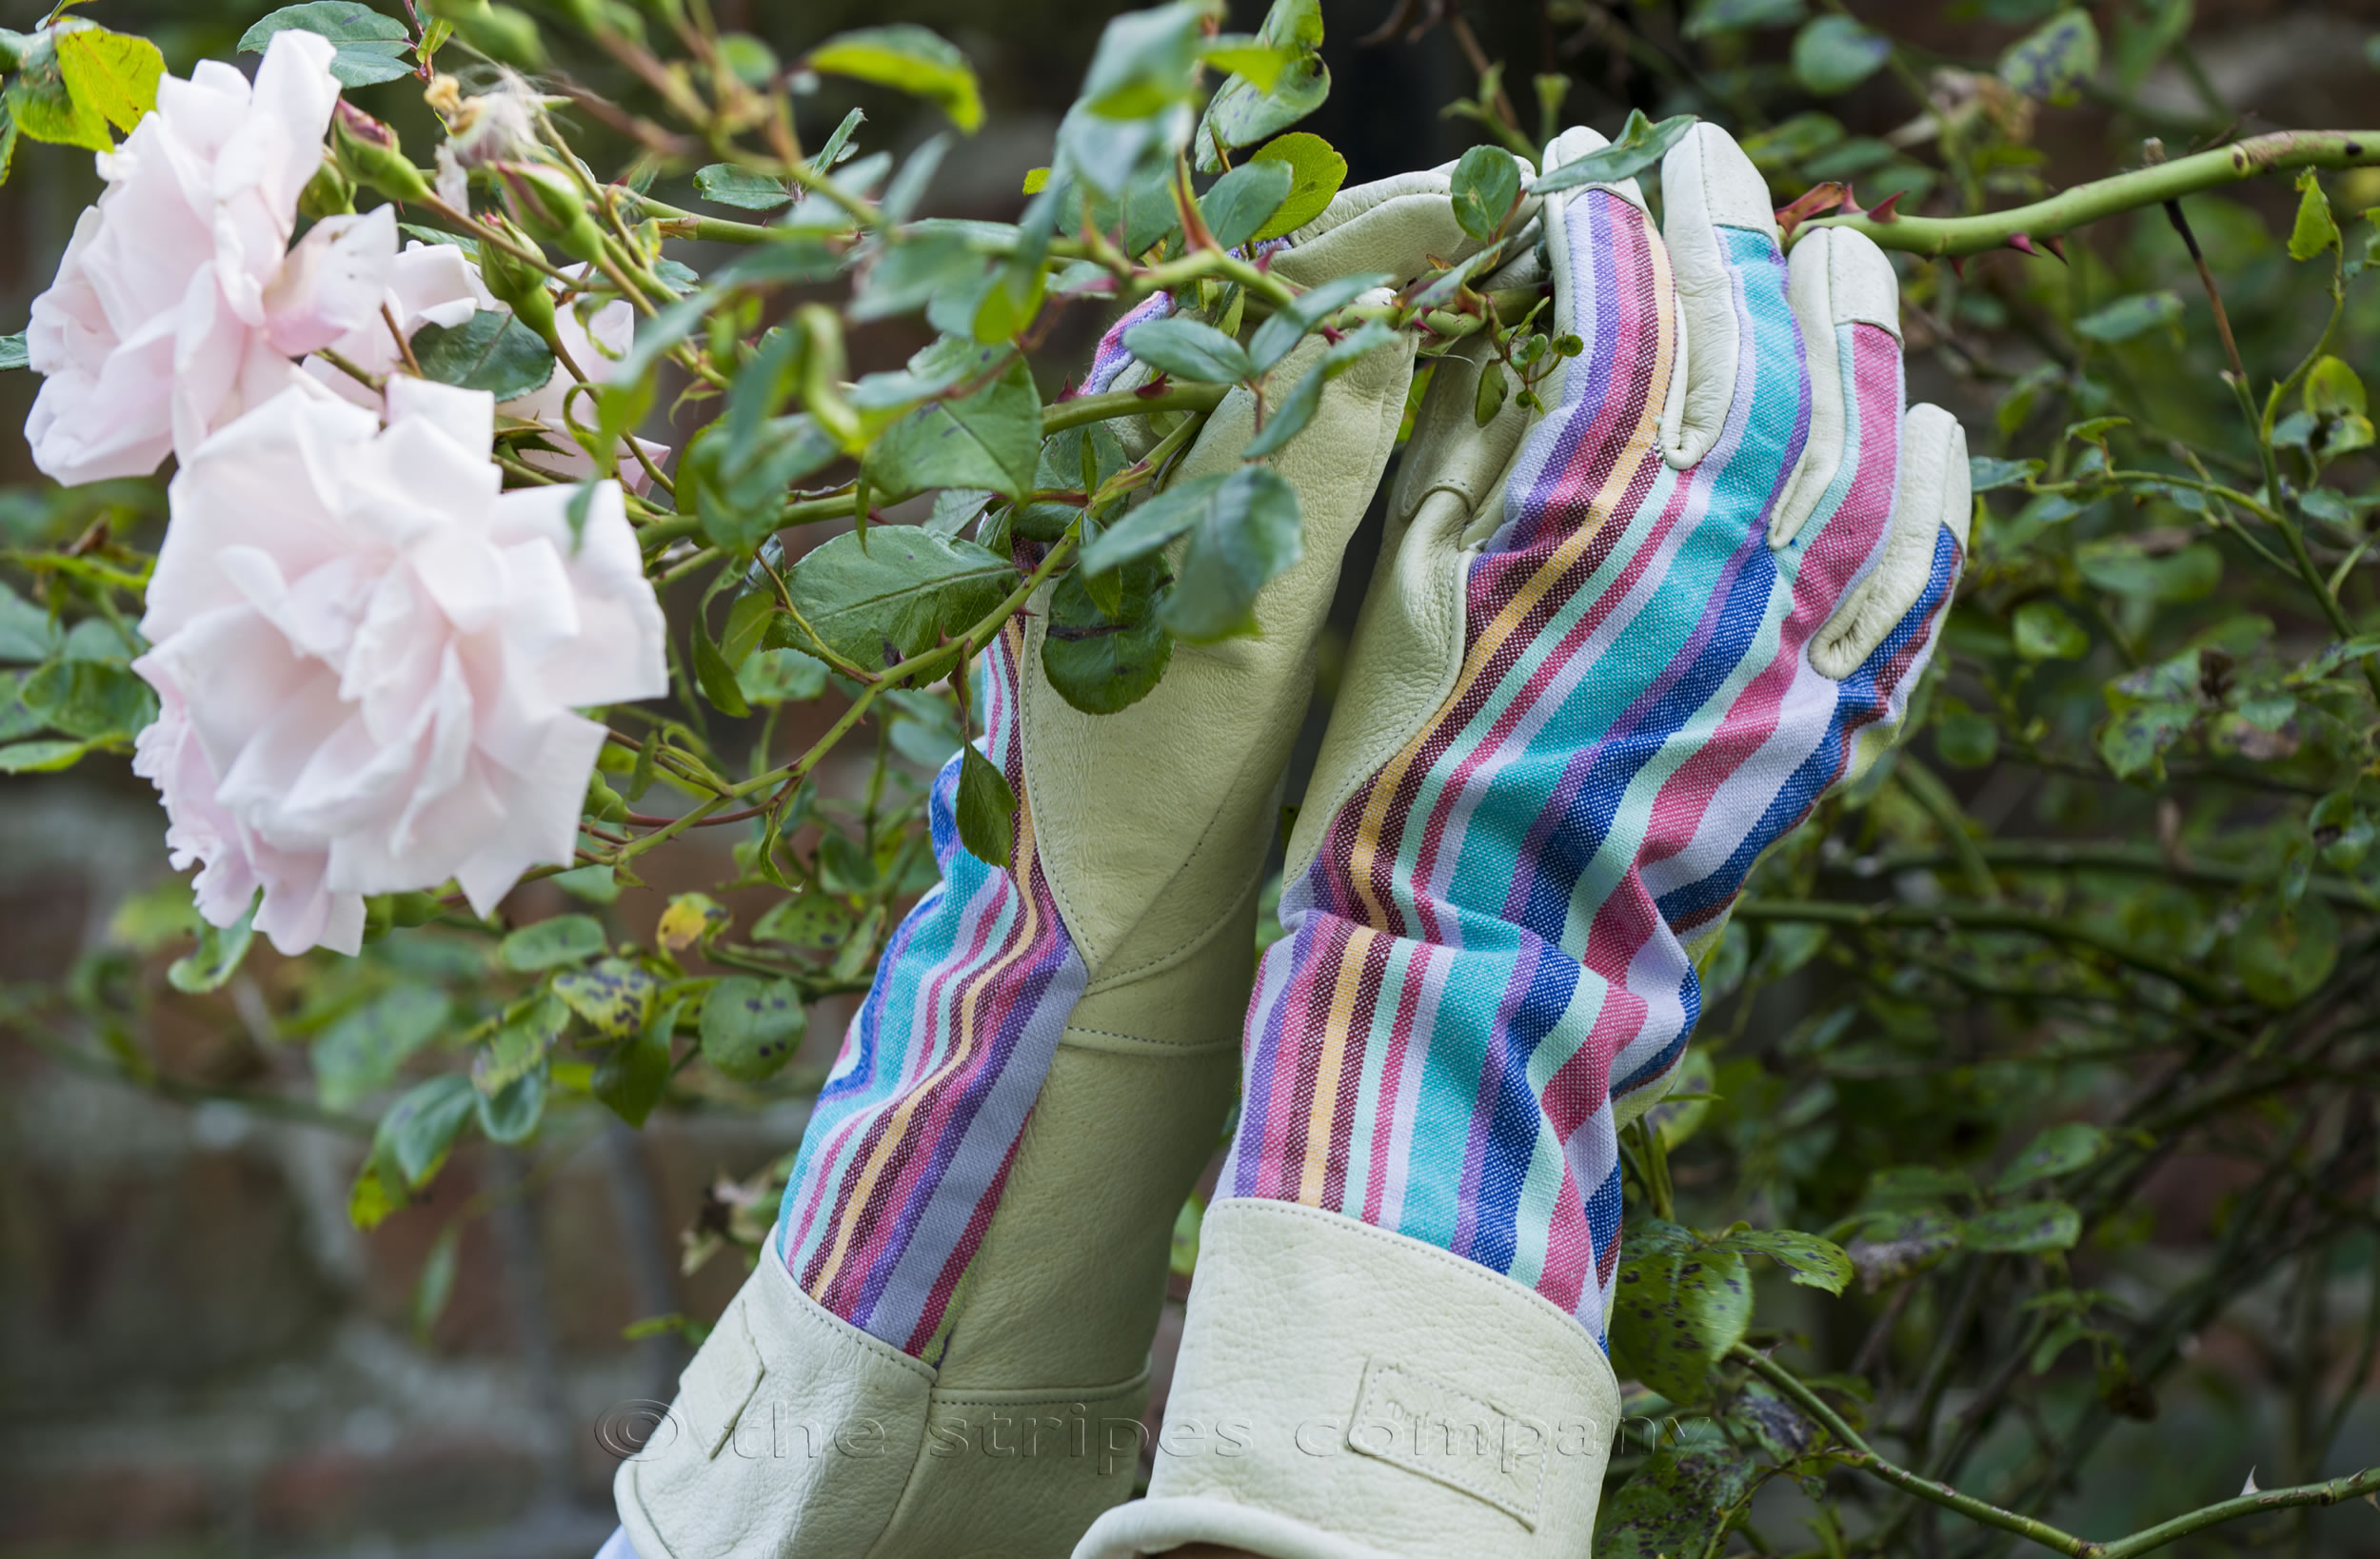 Ladies Striped Gauntlet Garden Gloves - M/L